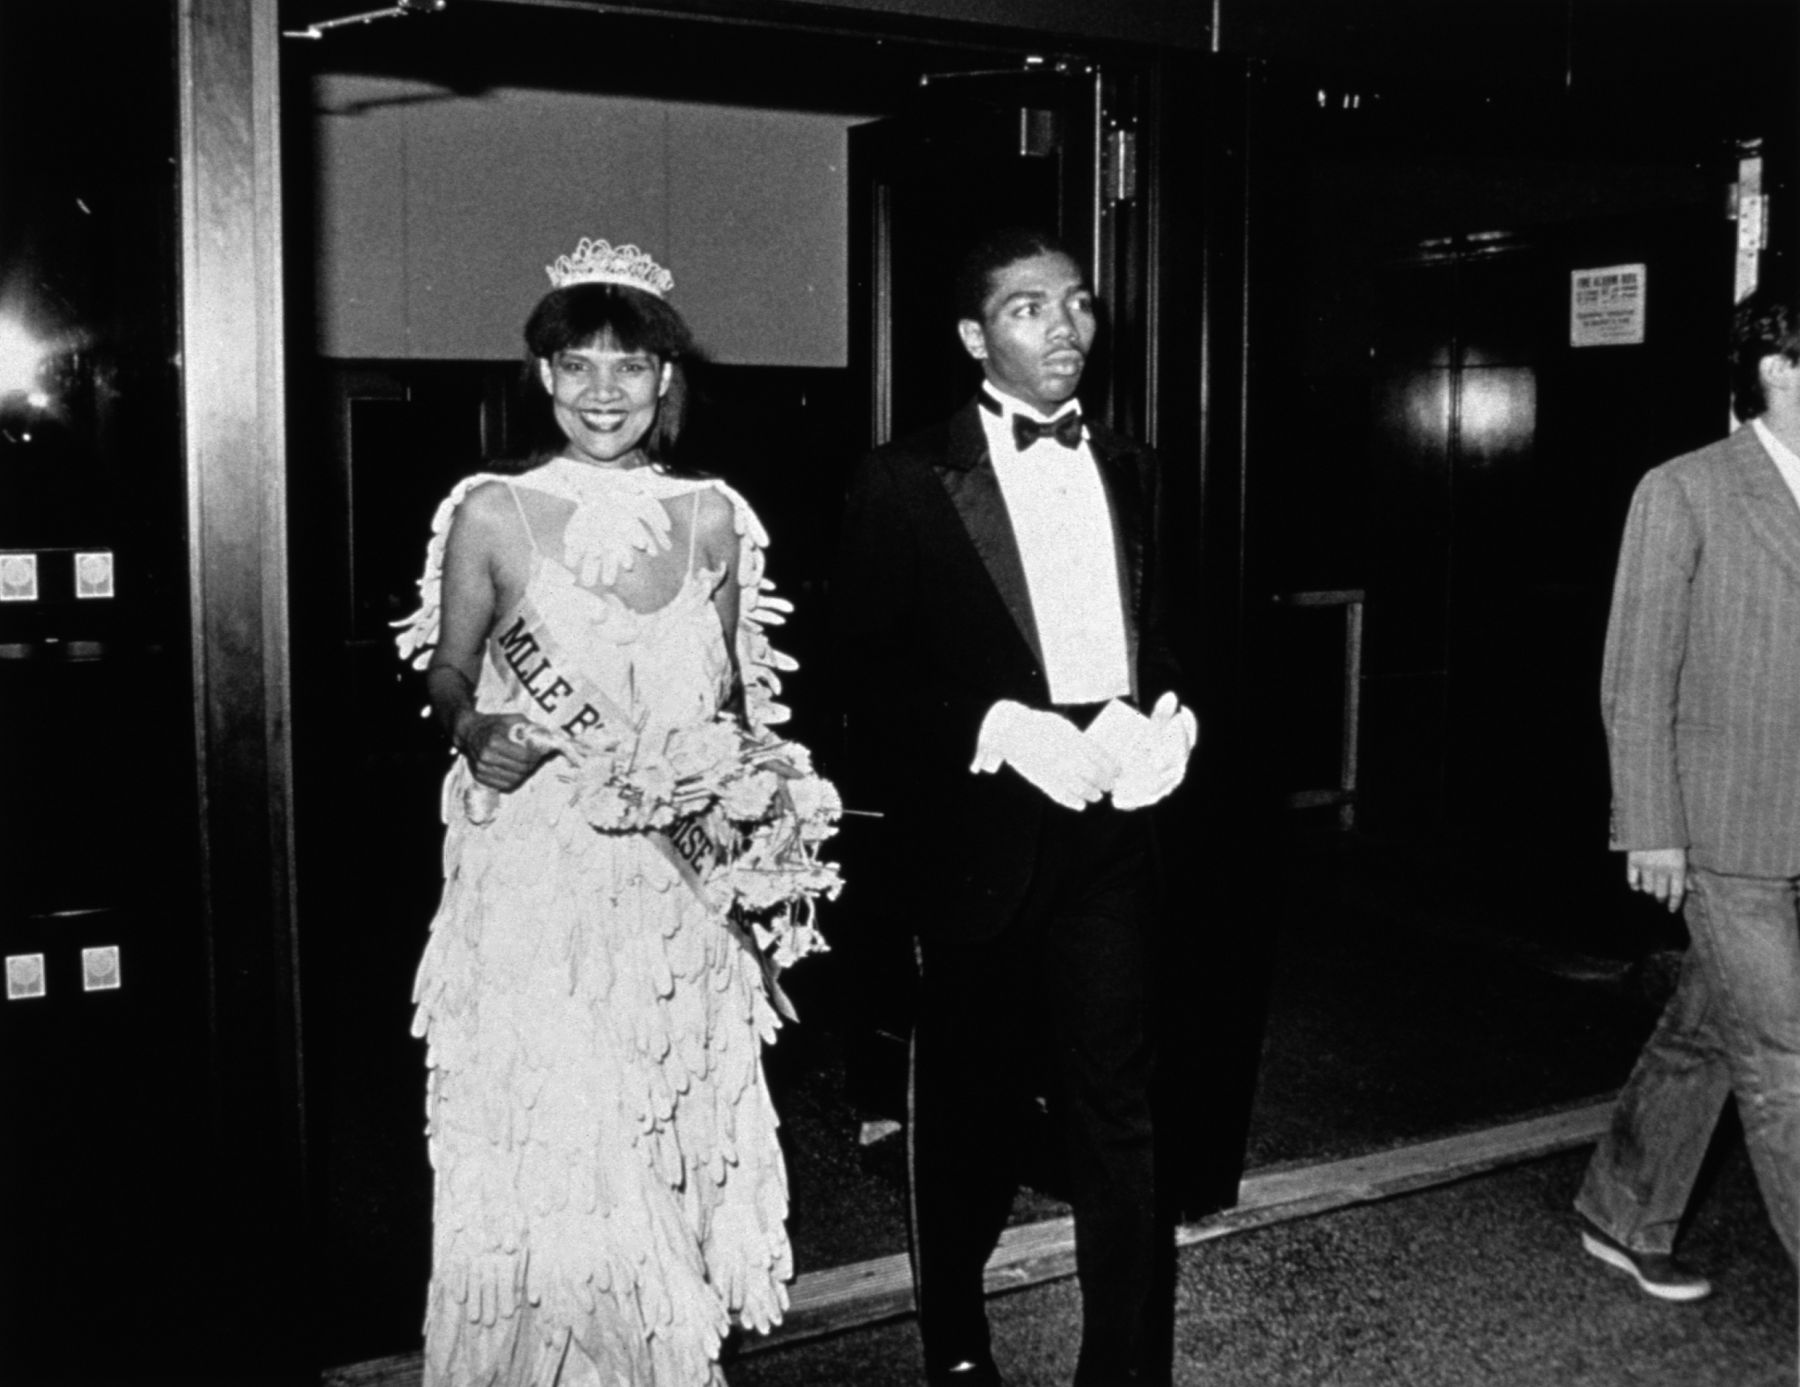 Untitled (Mlle Bourgeoise Noire and her Master of Ceremonies enter the New Museum), 1980-83/2009